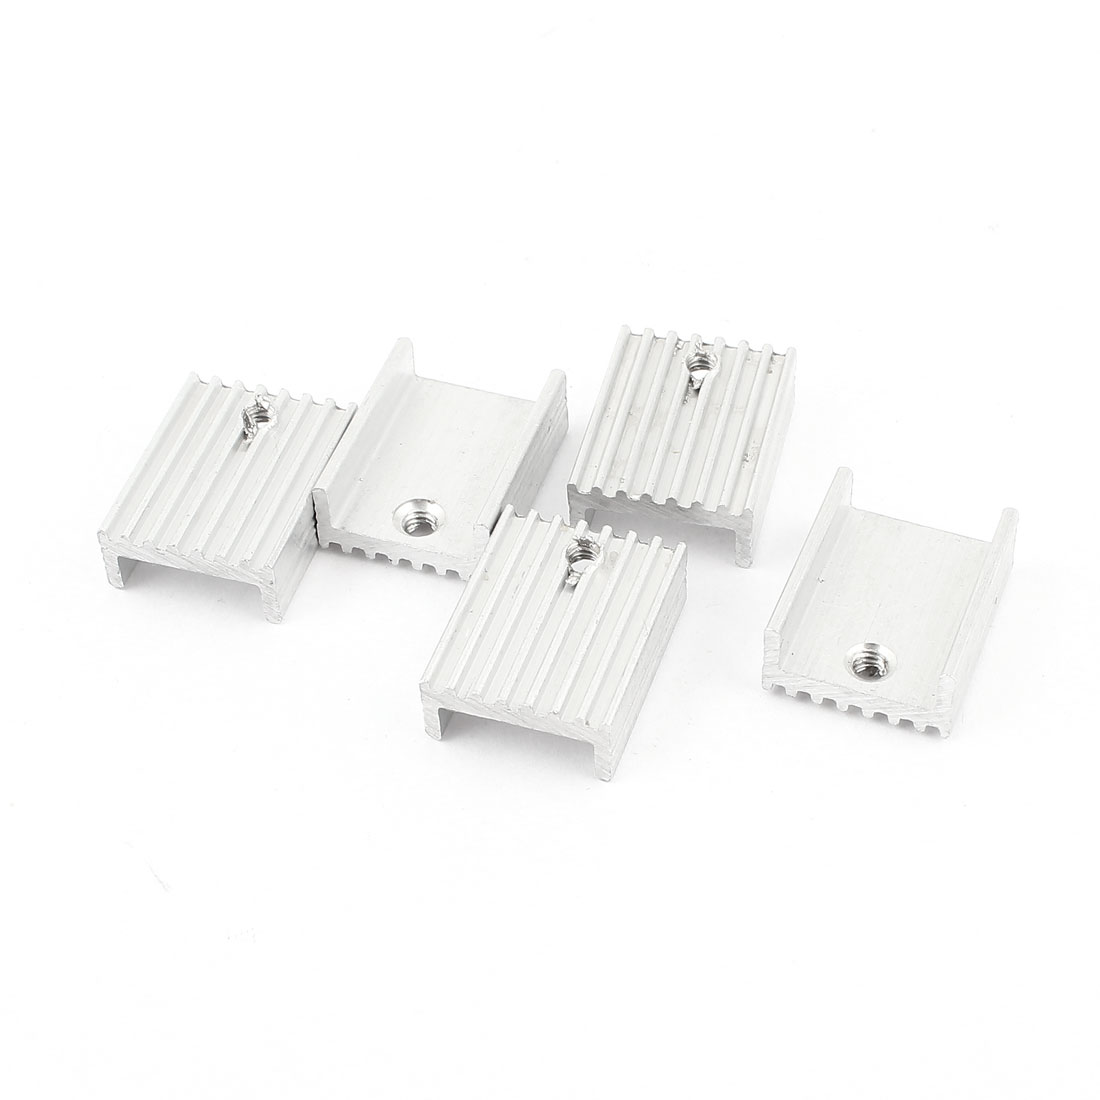 5 Pcs Silver Tone Aluminum Heat Sink 20x15x7mm for TO-220 Transistors